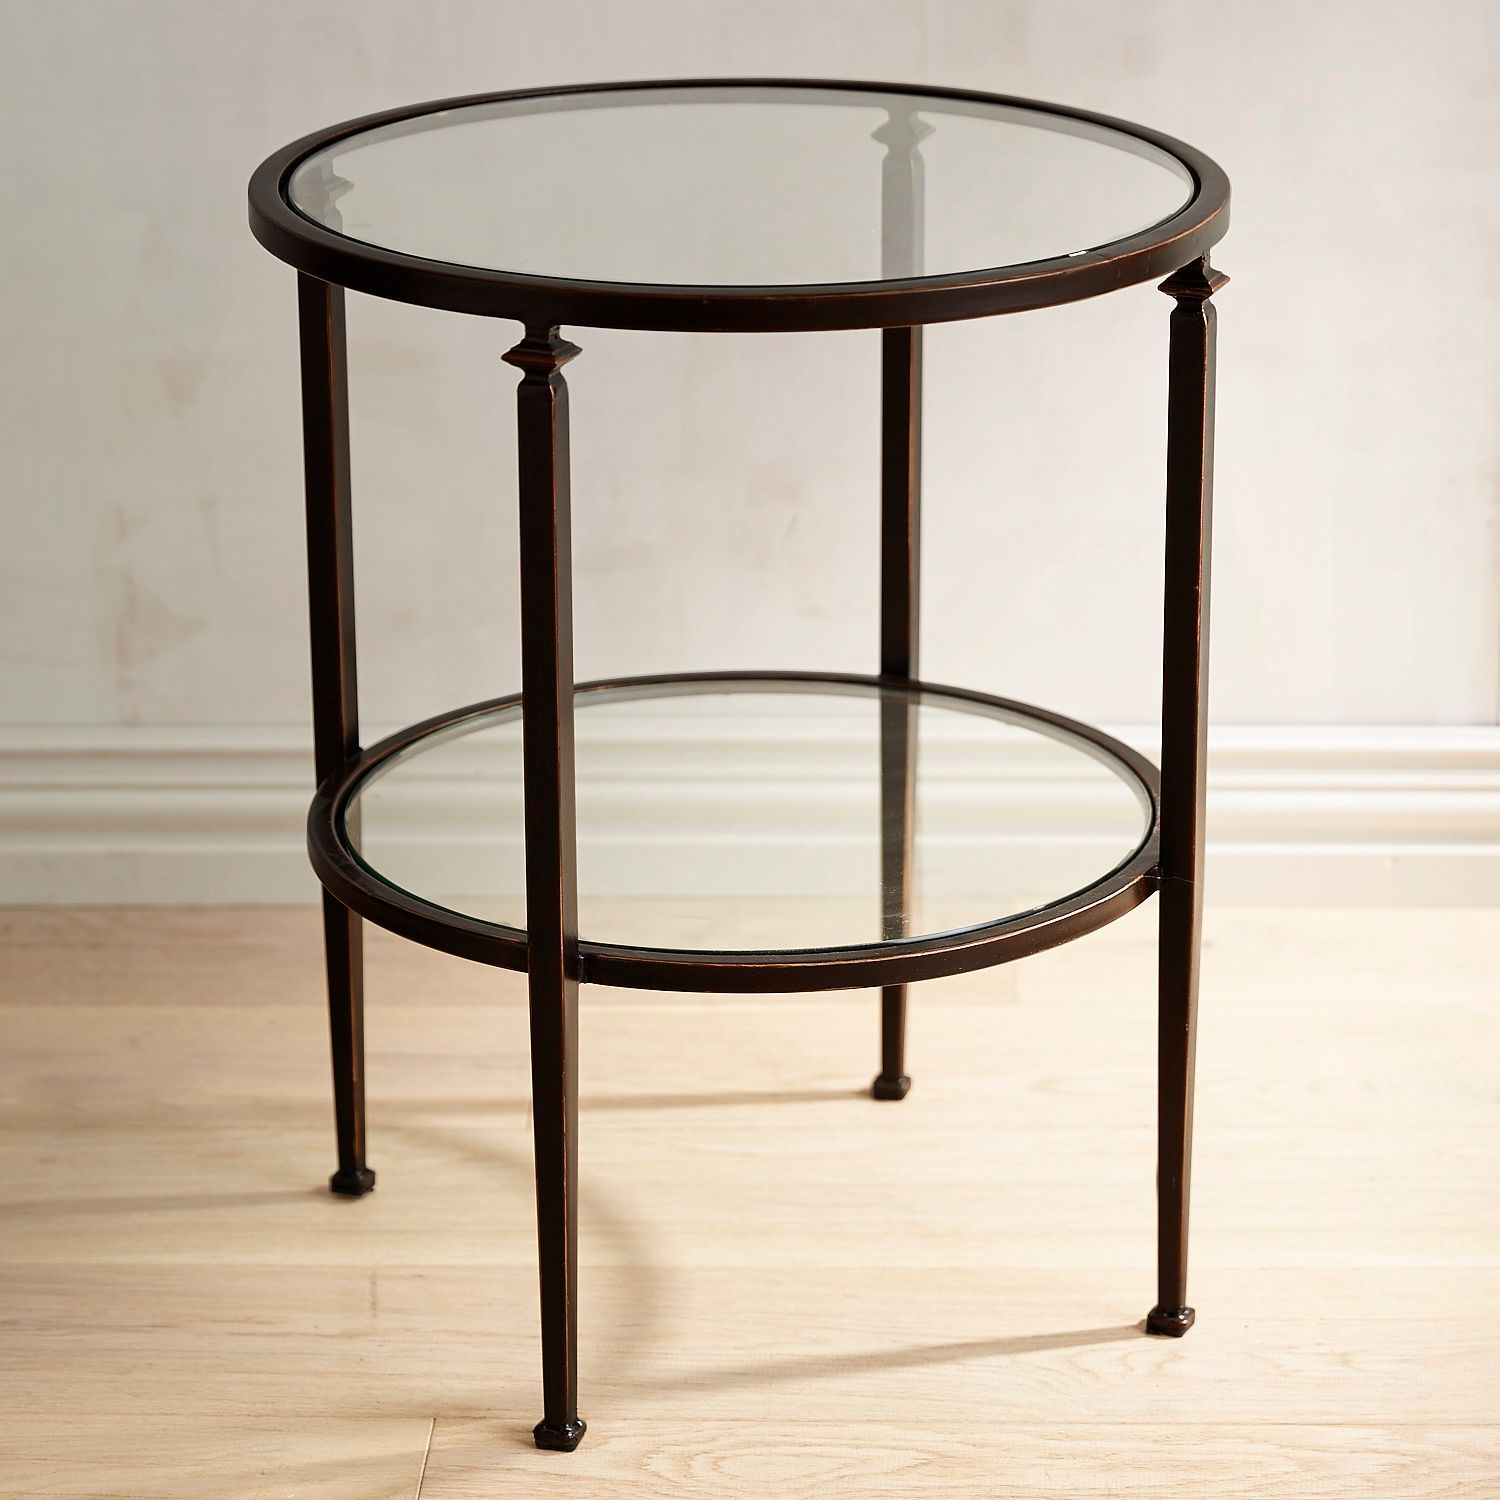 Lincoln Tempered Glass Top Round End Table Pier 1 Imports Glass Top End Tables Coffee Table Drum Coffee Table [ 1500 x 1500 Pixel ]